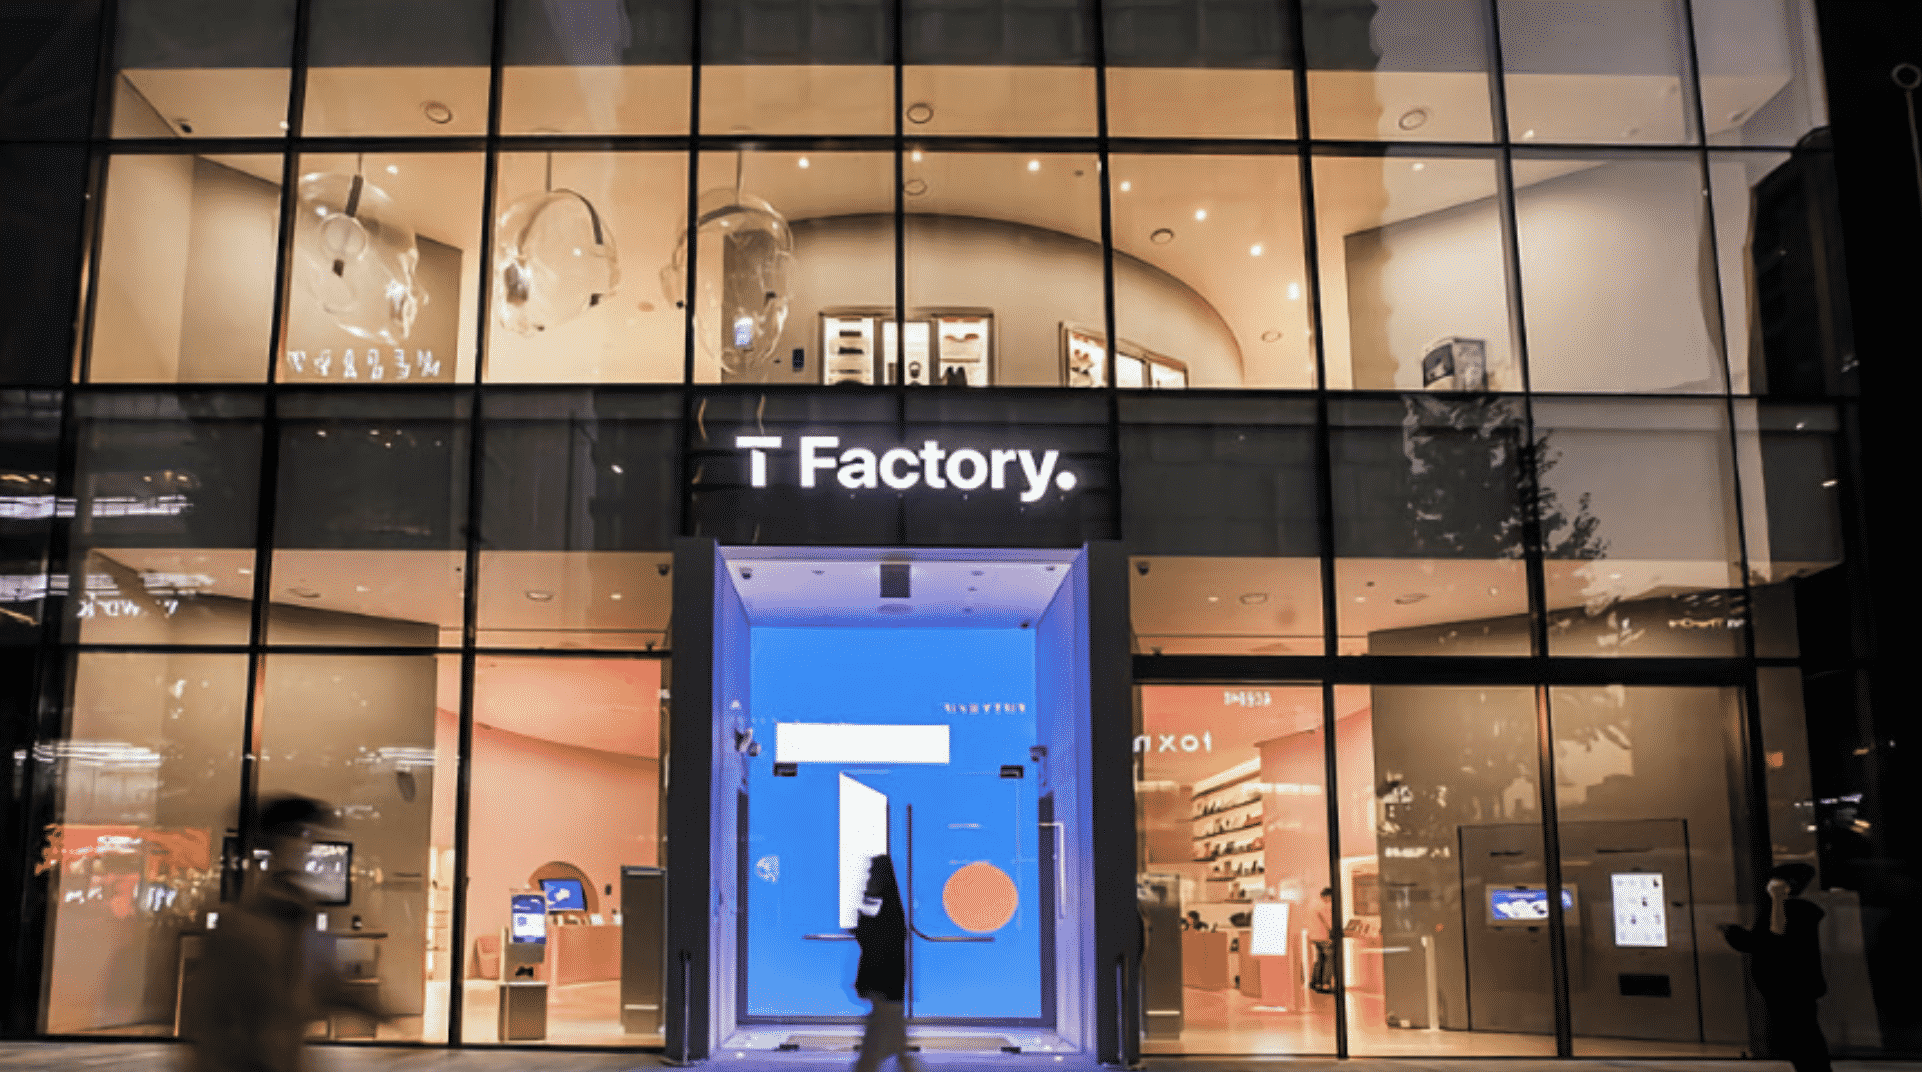 T Factory